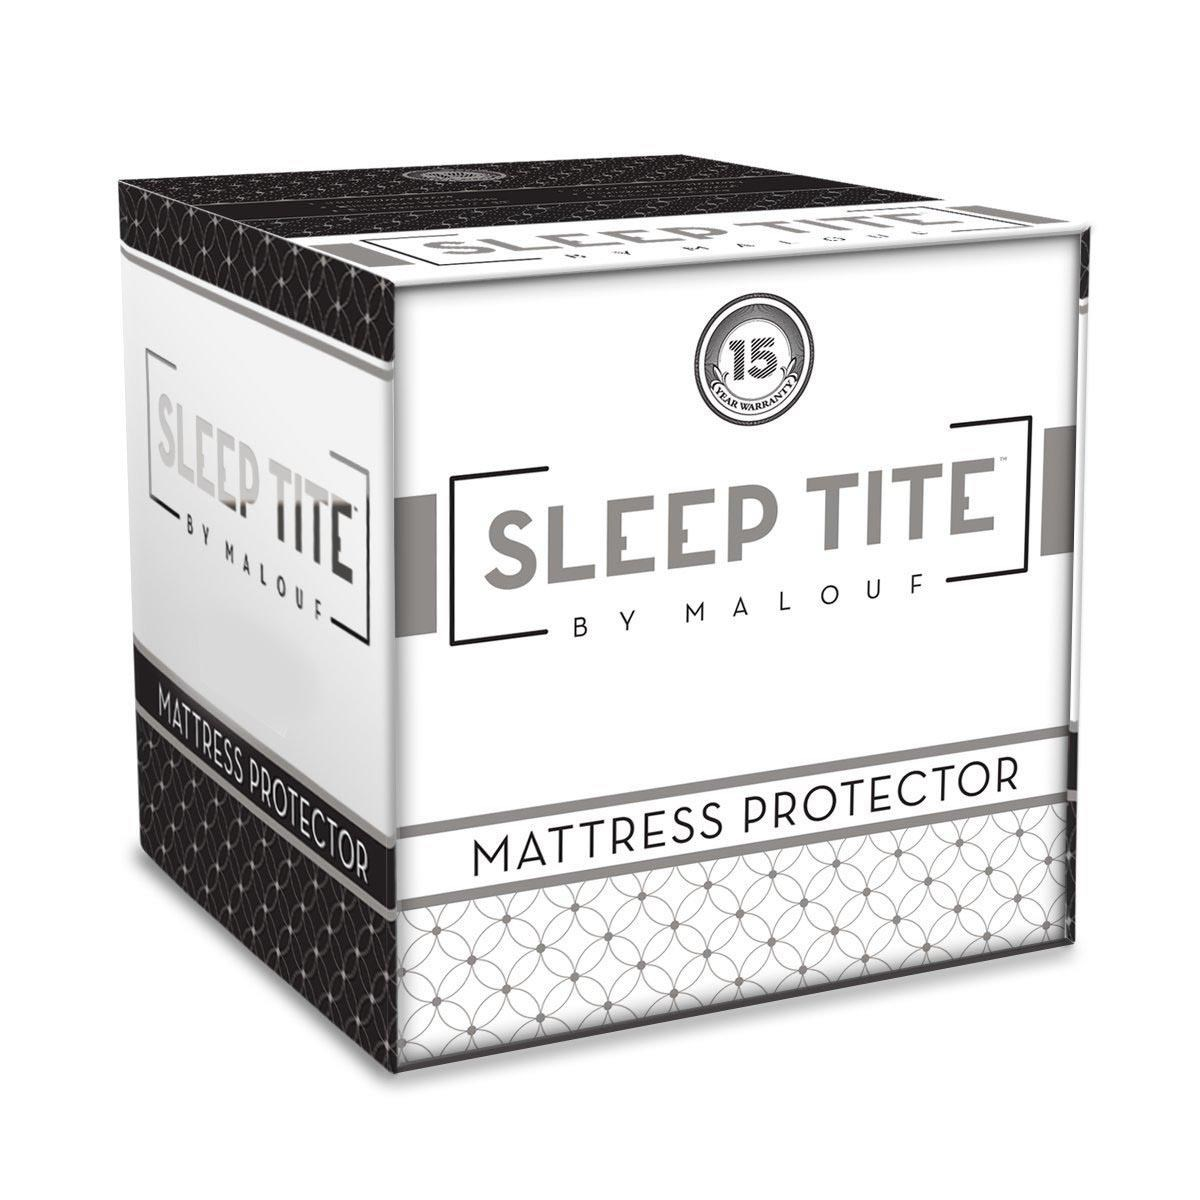 Malouf Sleep Tite Mattress Protector Mattress Protectors Twin Xl Sleeptite Mattress Protector By Malouf At Boulevard Home Furnishings